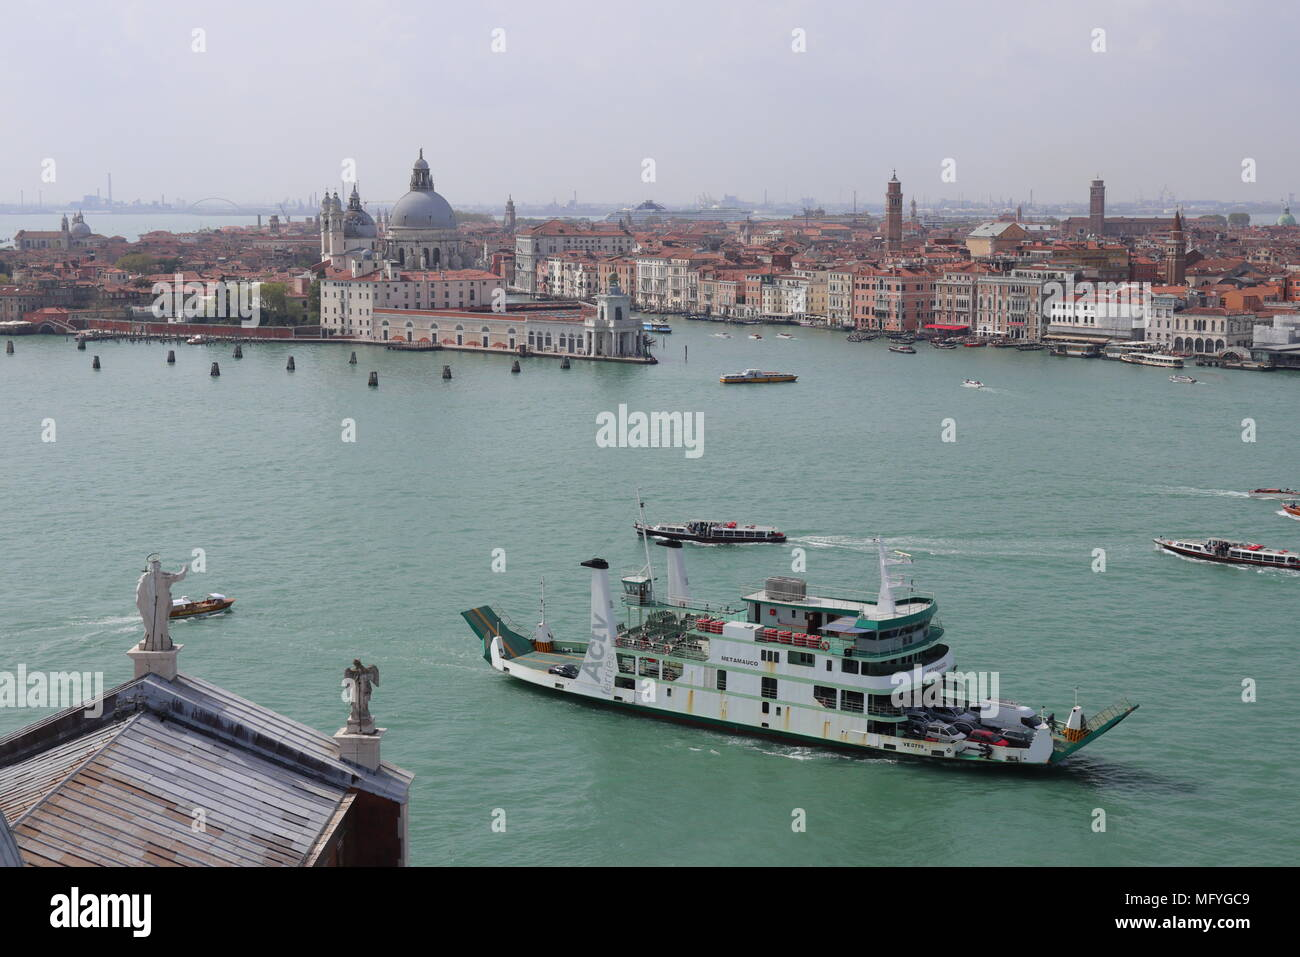 Venice Car Ferry Stock Photos & Venice Car Ferry Stock Images - Alamy